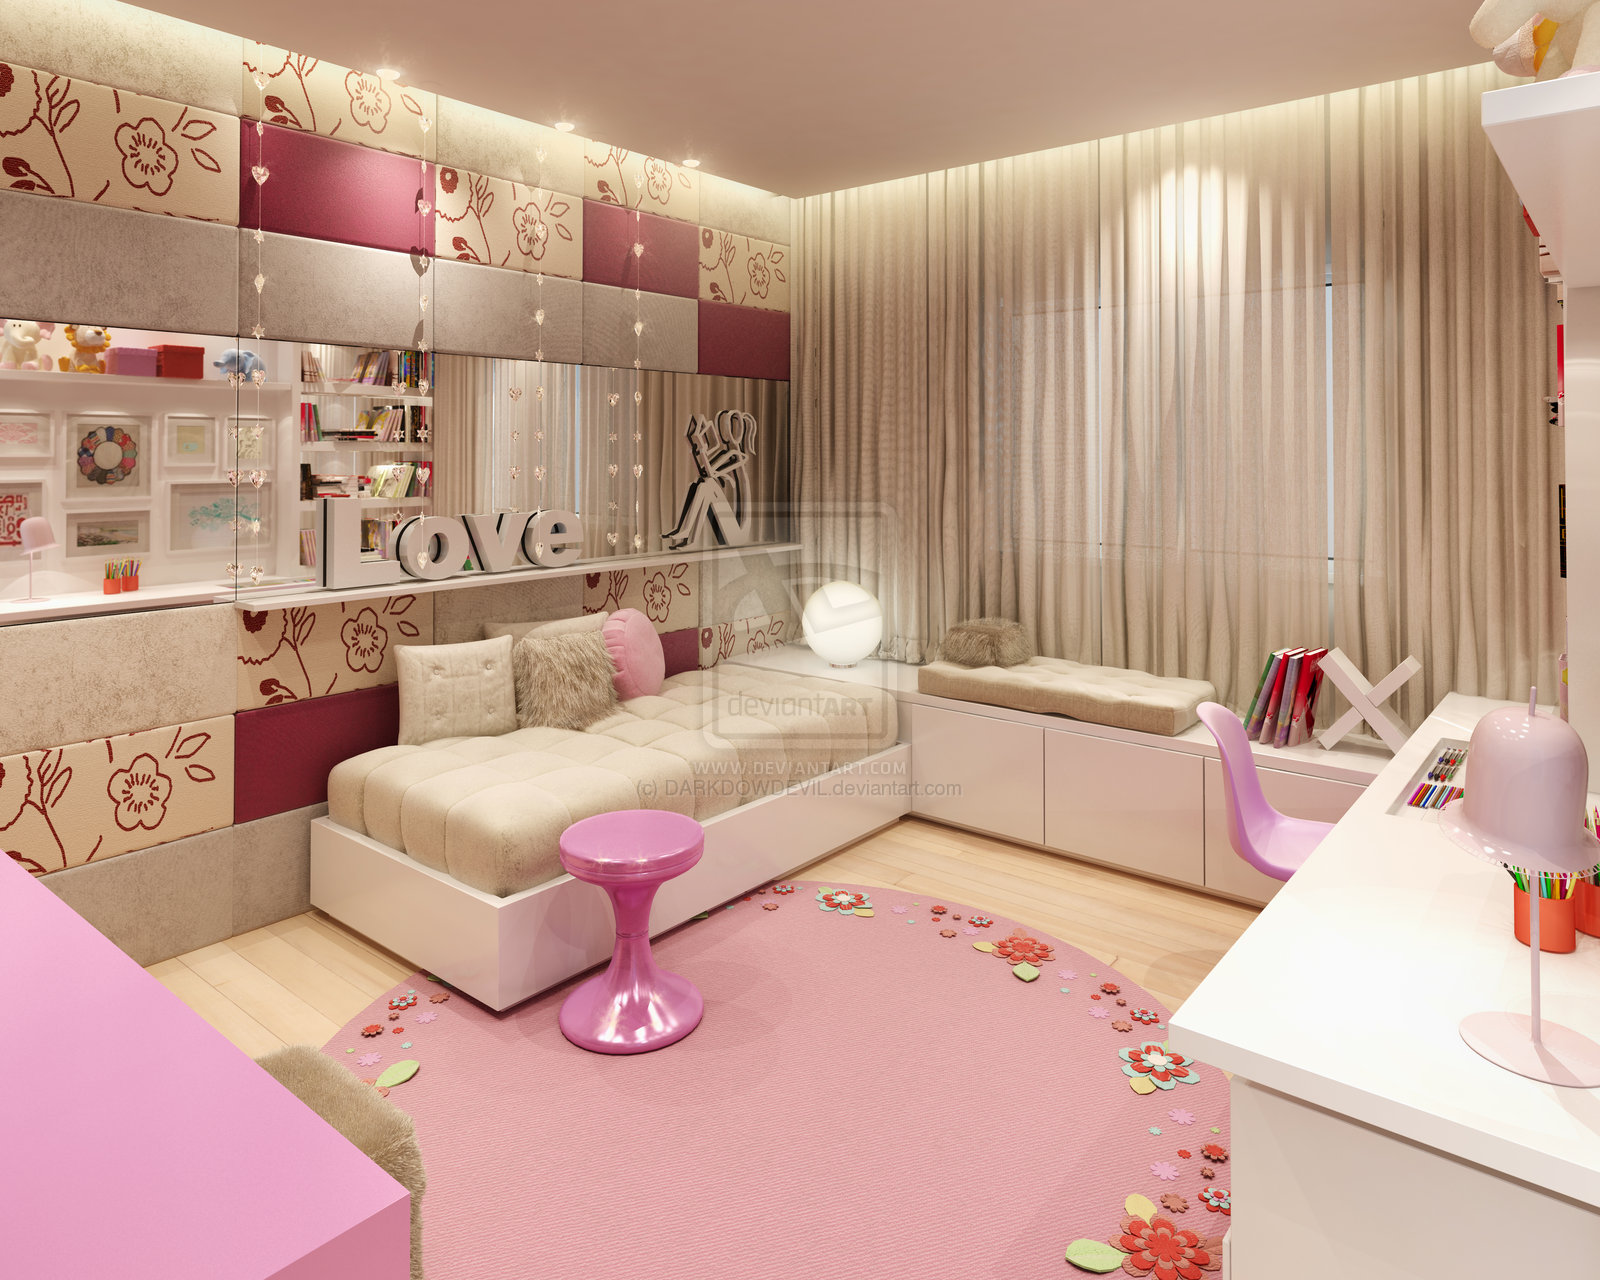 Girls bedroom accessories kid bedroom sets - Photos of girls bedroom ...